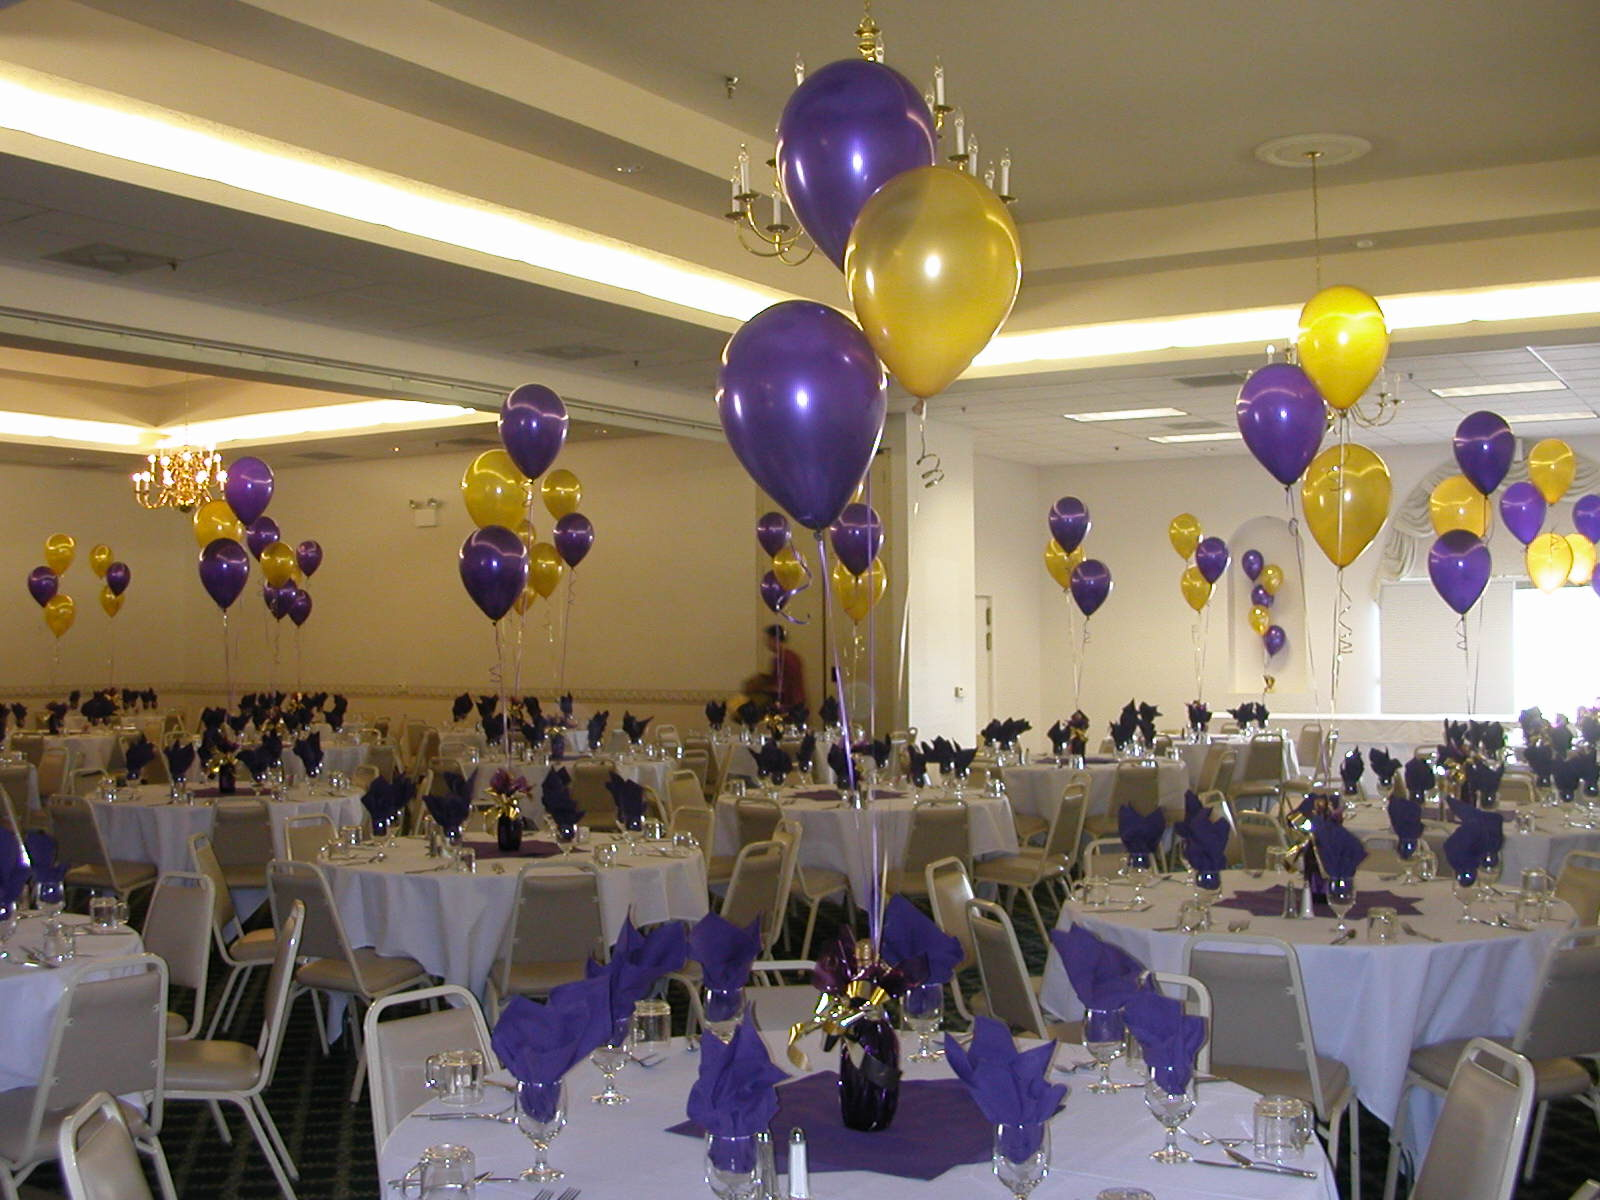 Graduation balloon decoration ideas car interior design for Balloon decoration graduation